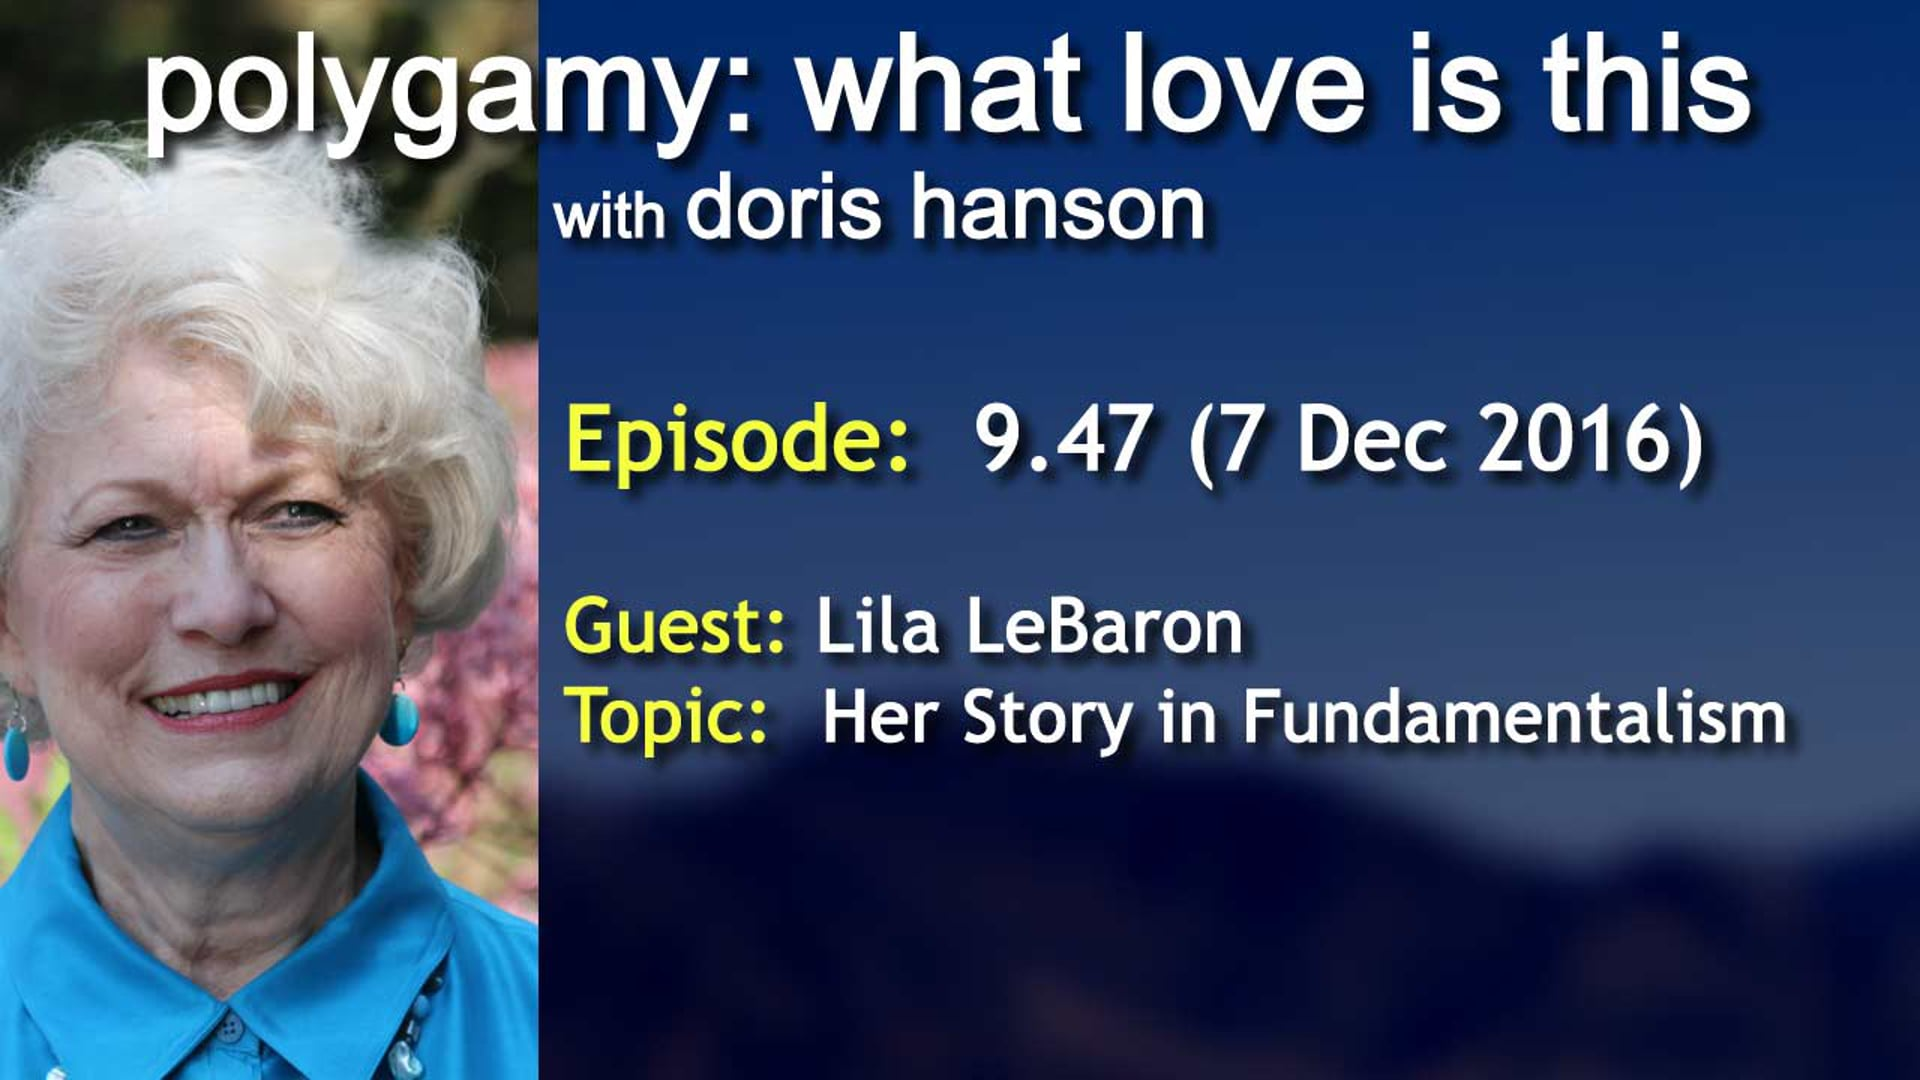 Polygamy: What Love Is This? (Episode 9.47 - 7 Dec 2016)